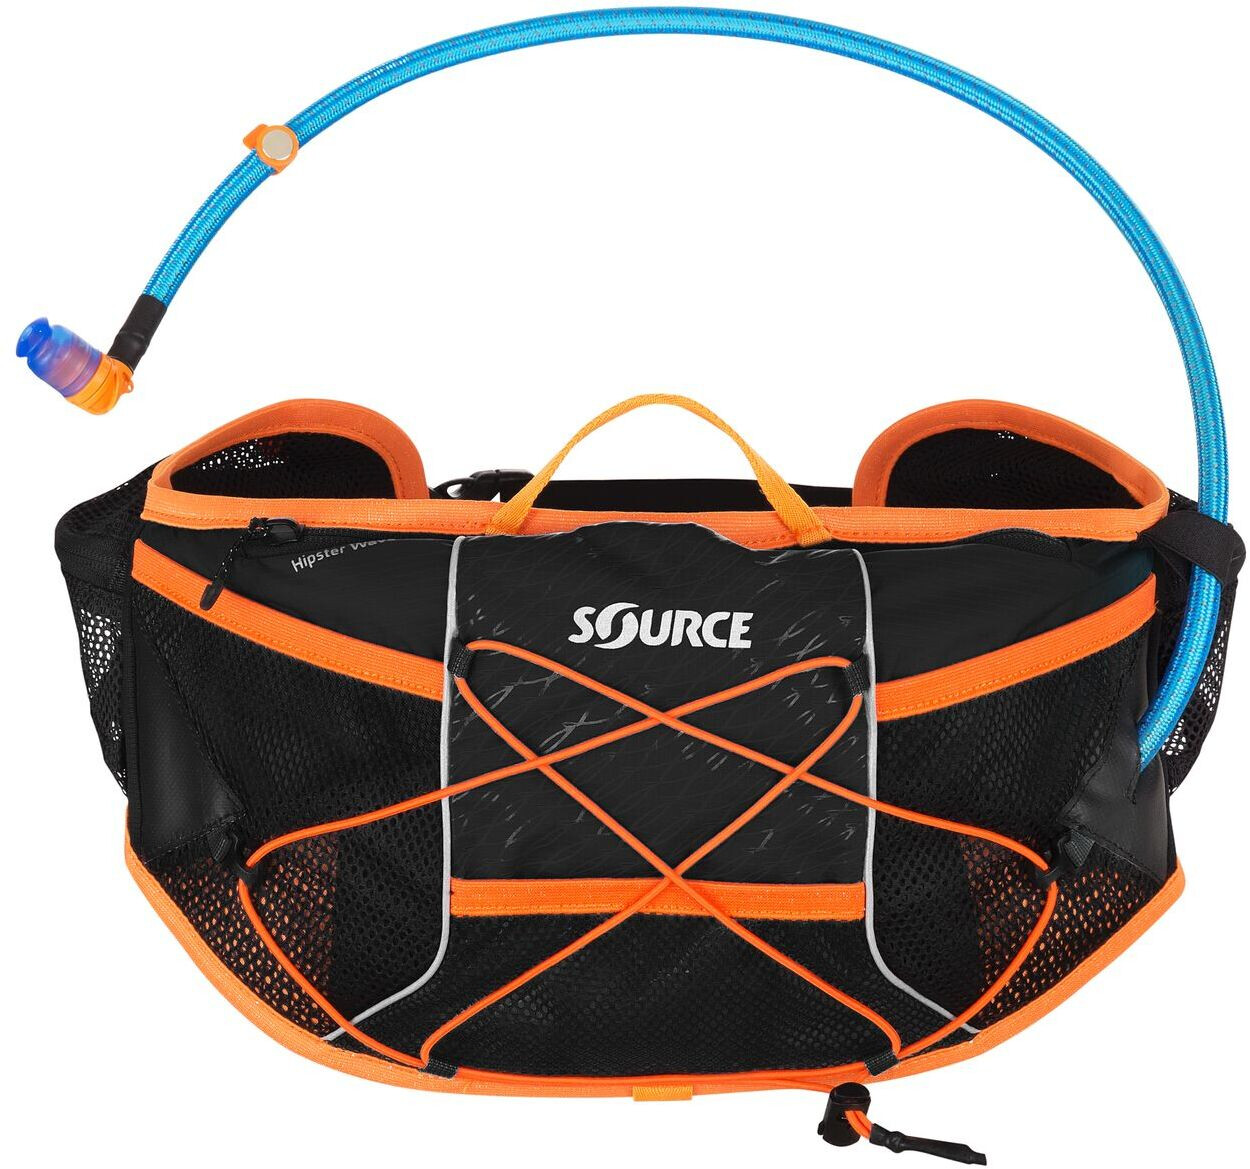 SOURCE Hipster Wave Drikkebælte 1,5L, black | Waist bags